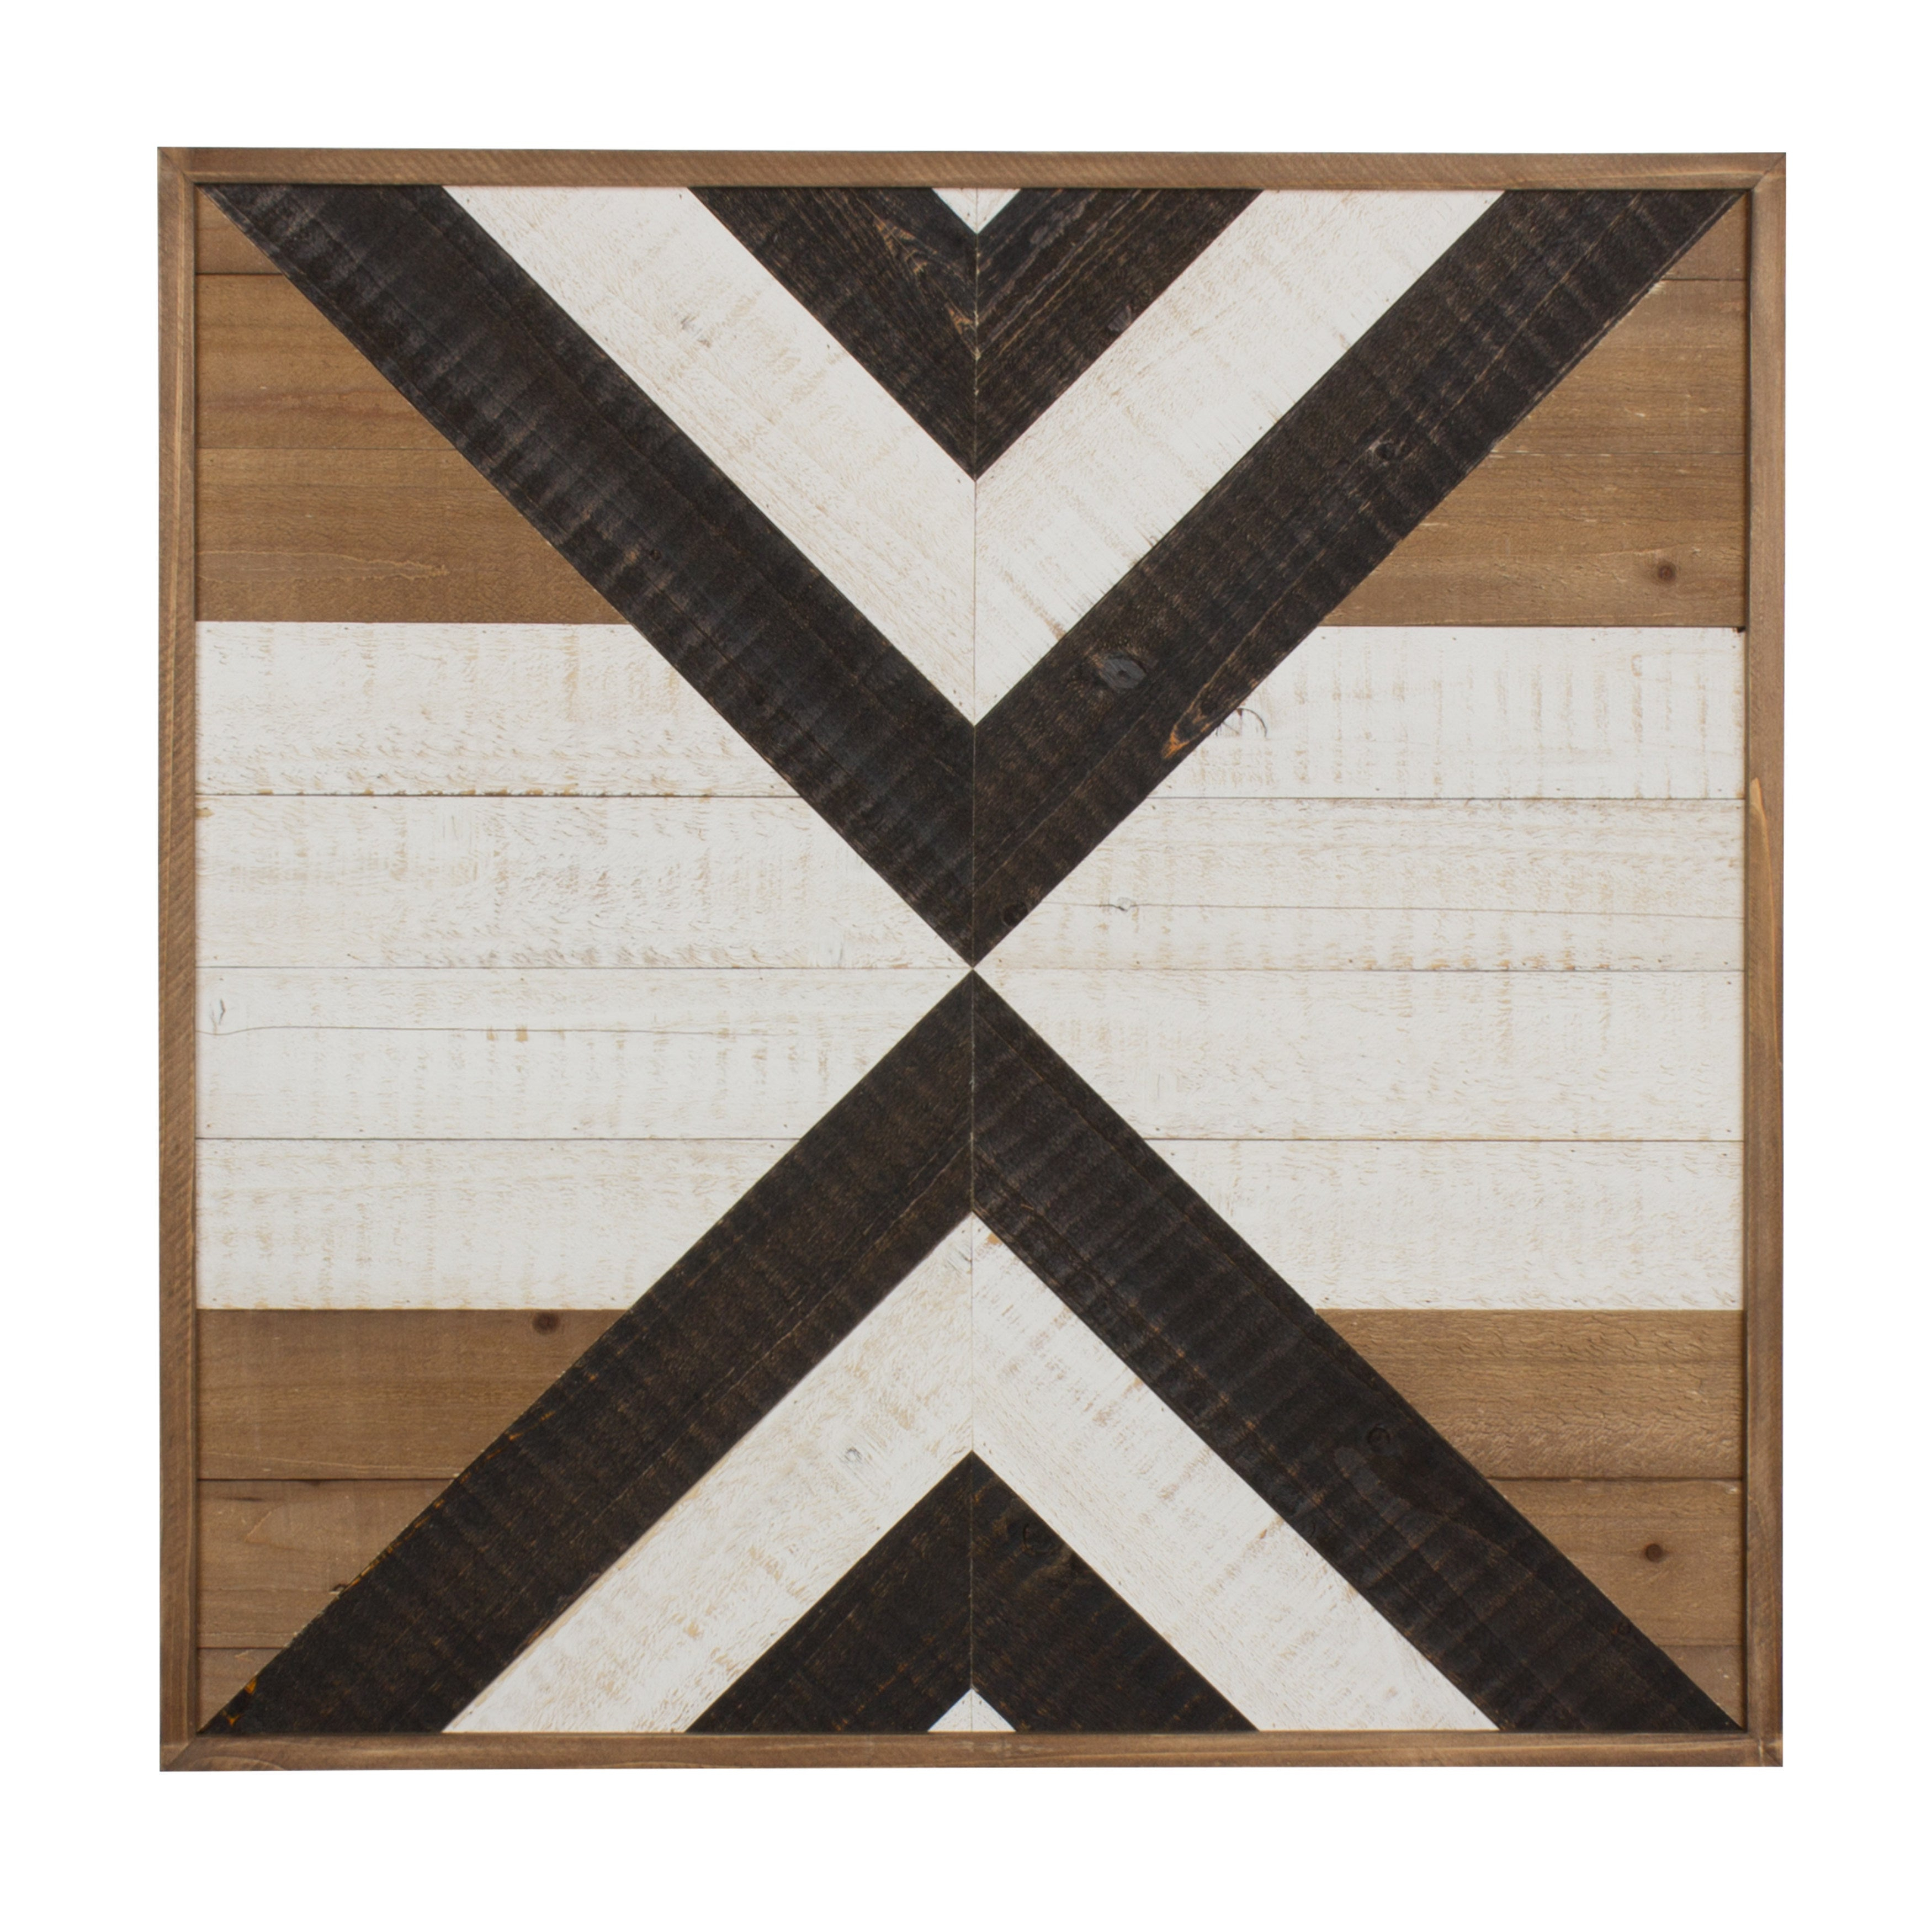 Find Great Art Gallery Deals Shopping At Overstock Regarding Latest Panel Wood Wall Decor Sets (Set Of 2) (View 8 of 20)